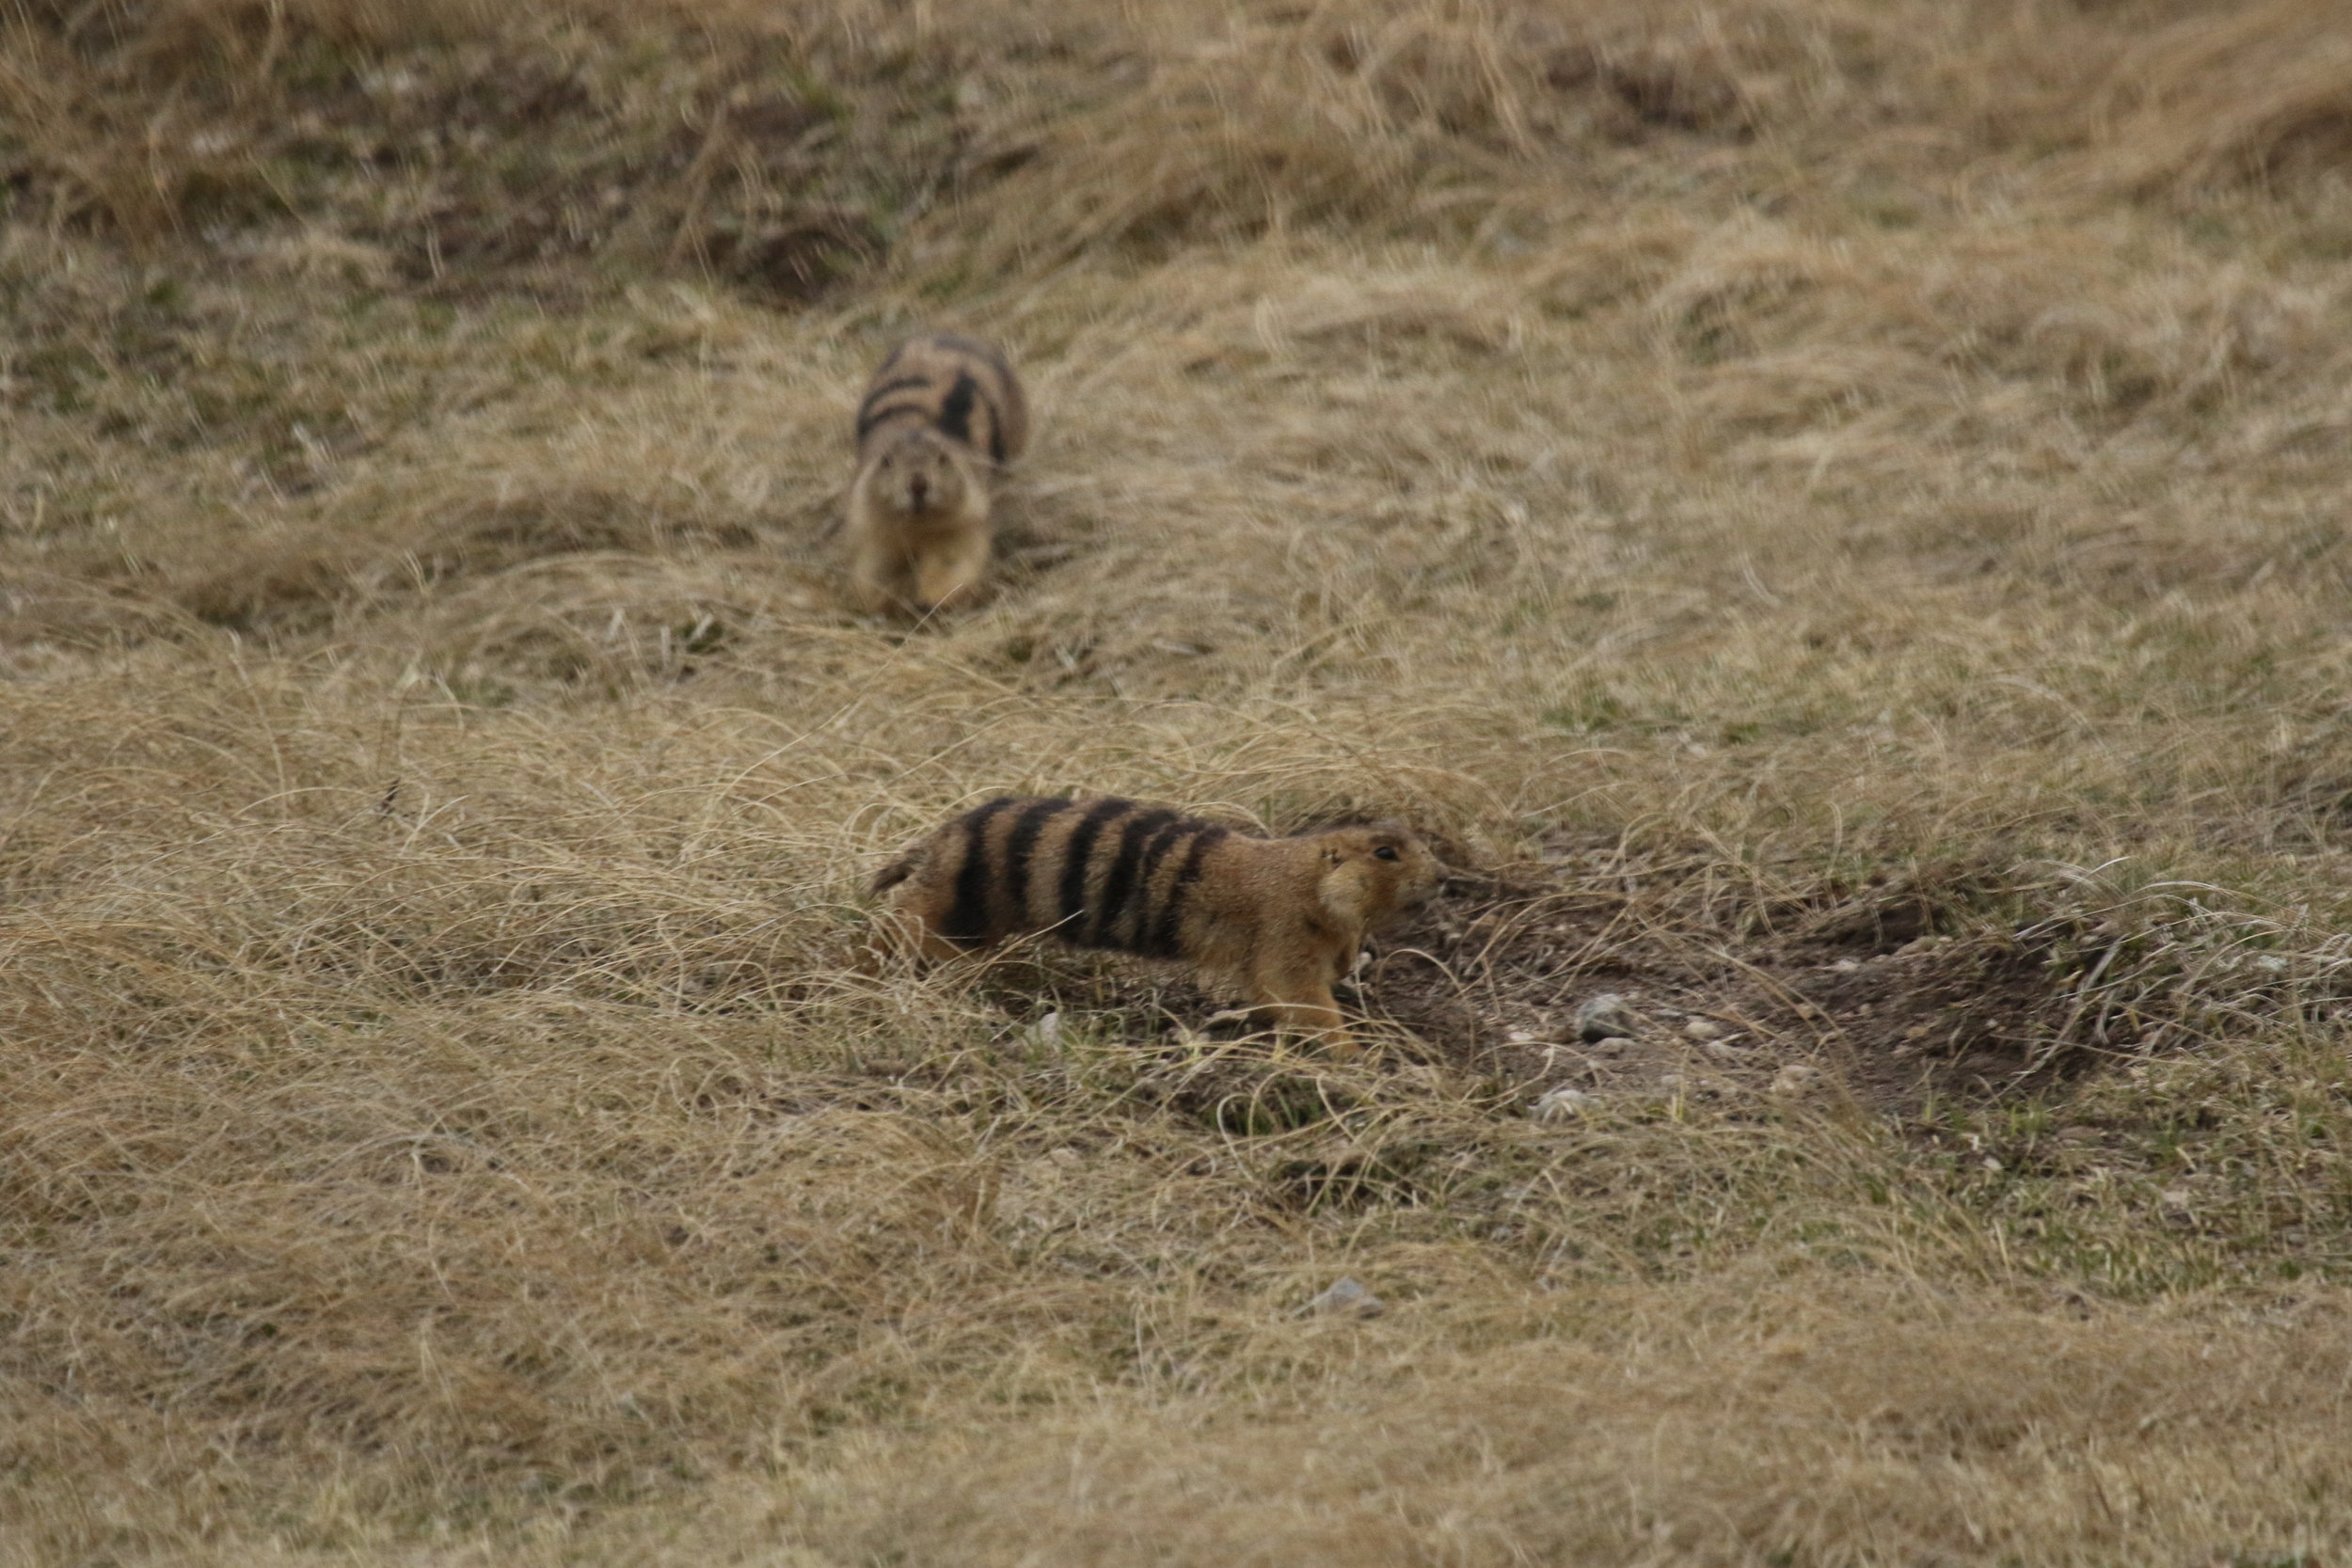 Having already mated with her, 24 tries to keep 6 Stripe underground, chasing and herding her into her burrow to keep her away from other males in the area.  ©MRR 2017